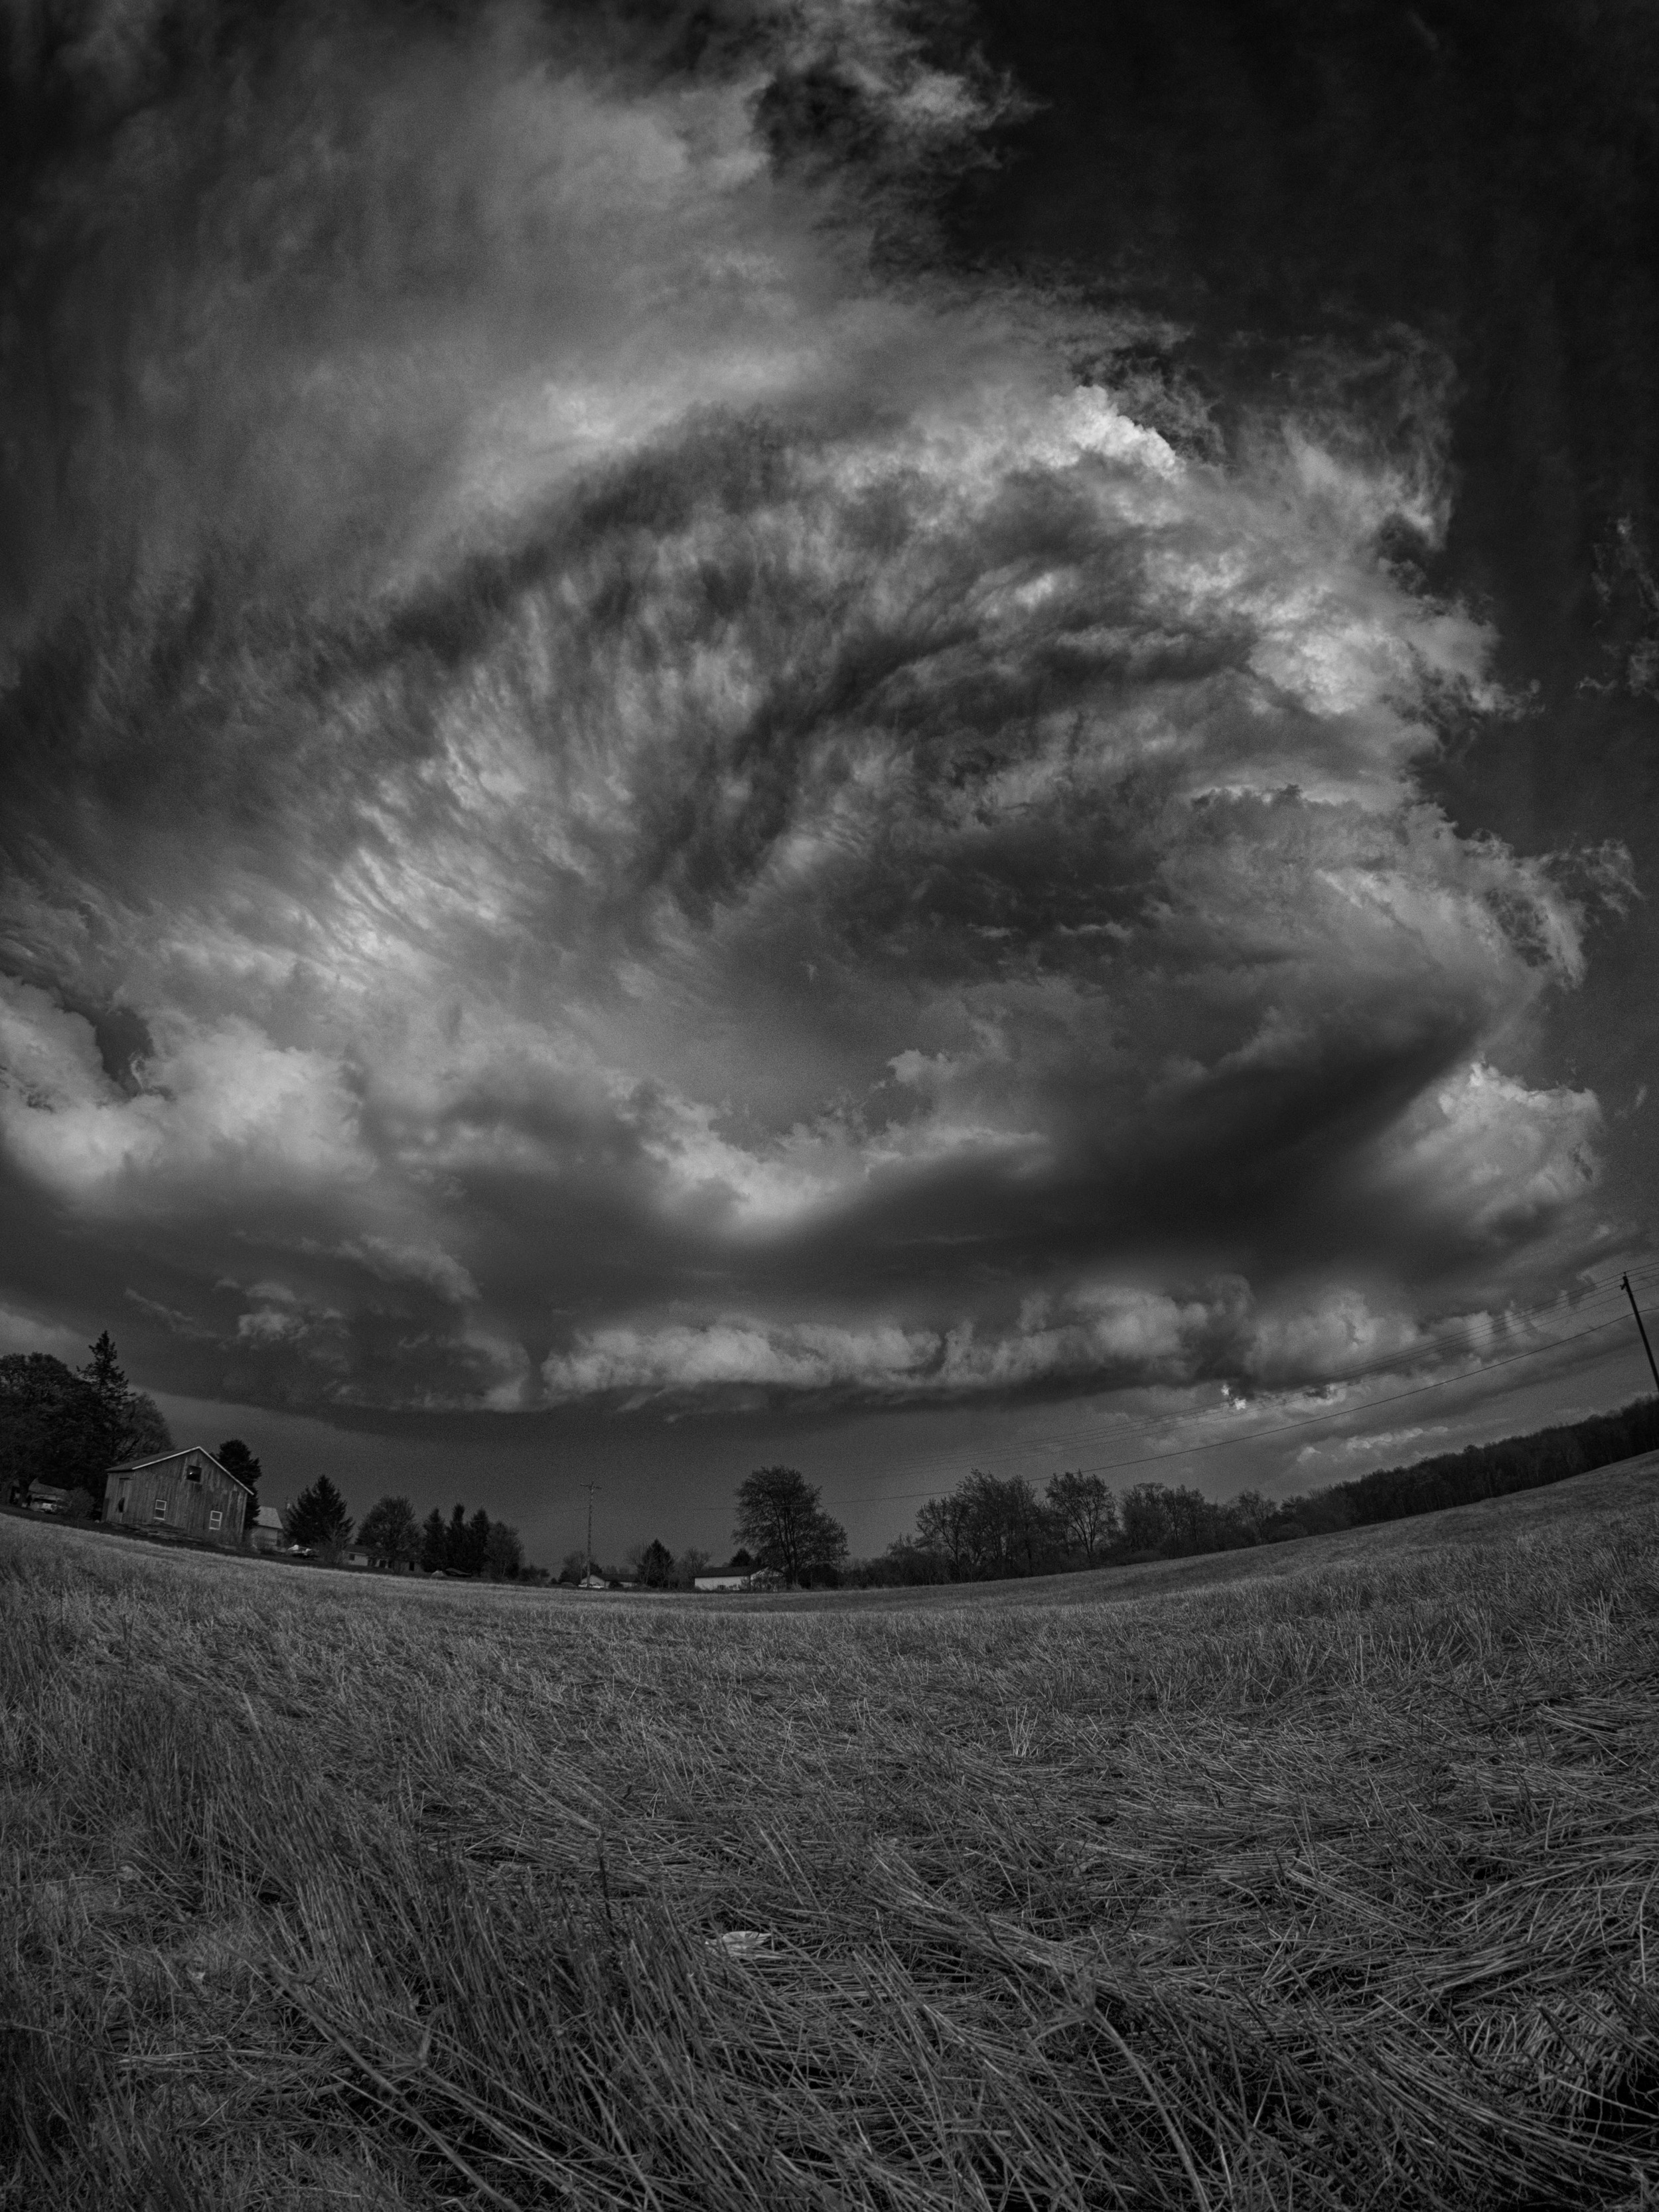 A storm rolling into my frame as seen through the E-M1 + Rokinon 7.5mm Fisheye